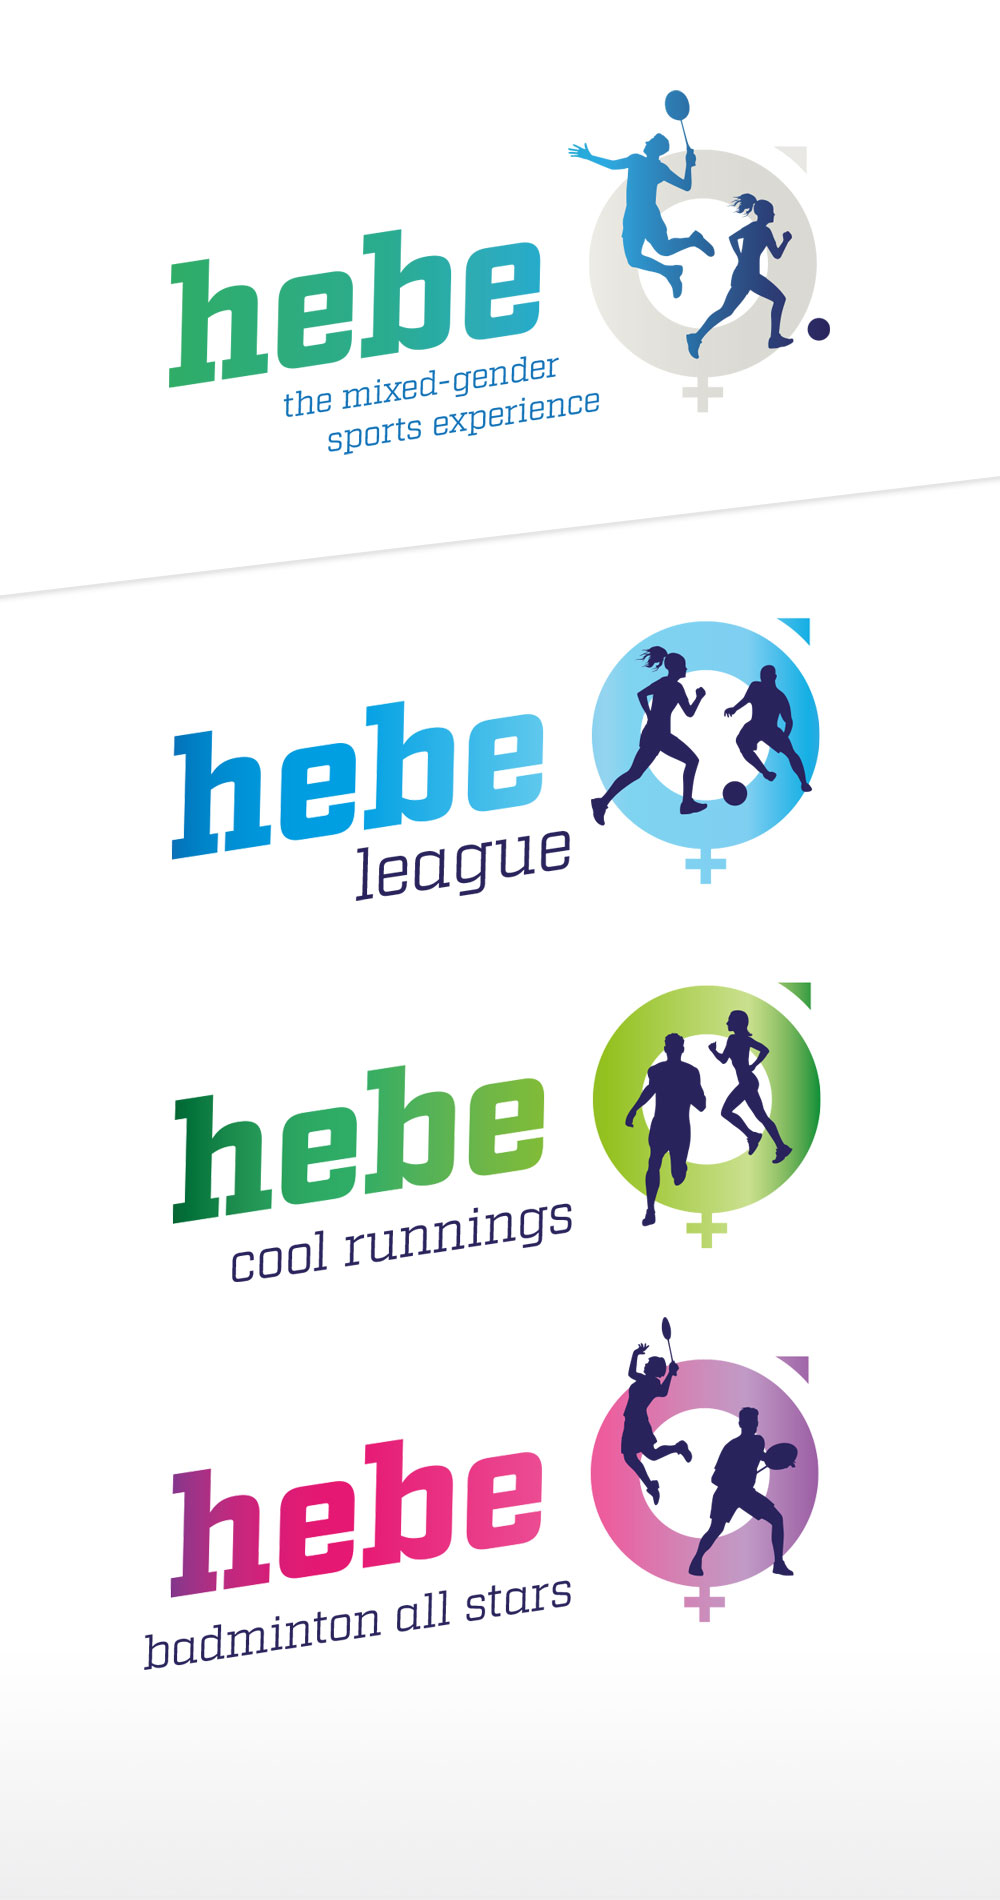 HEBE the mixed-gender sports experience